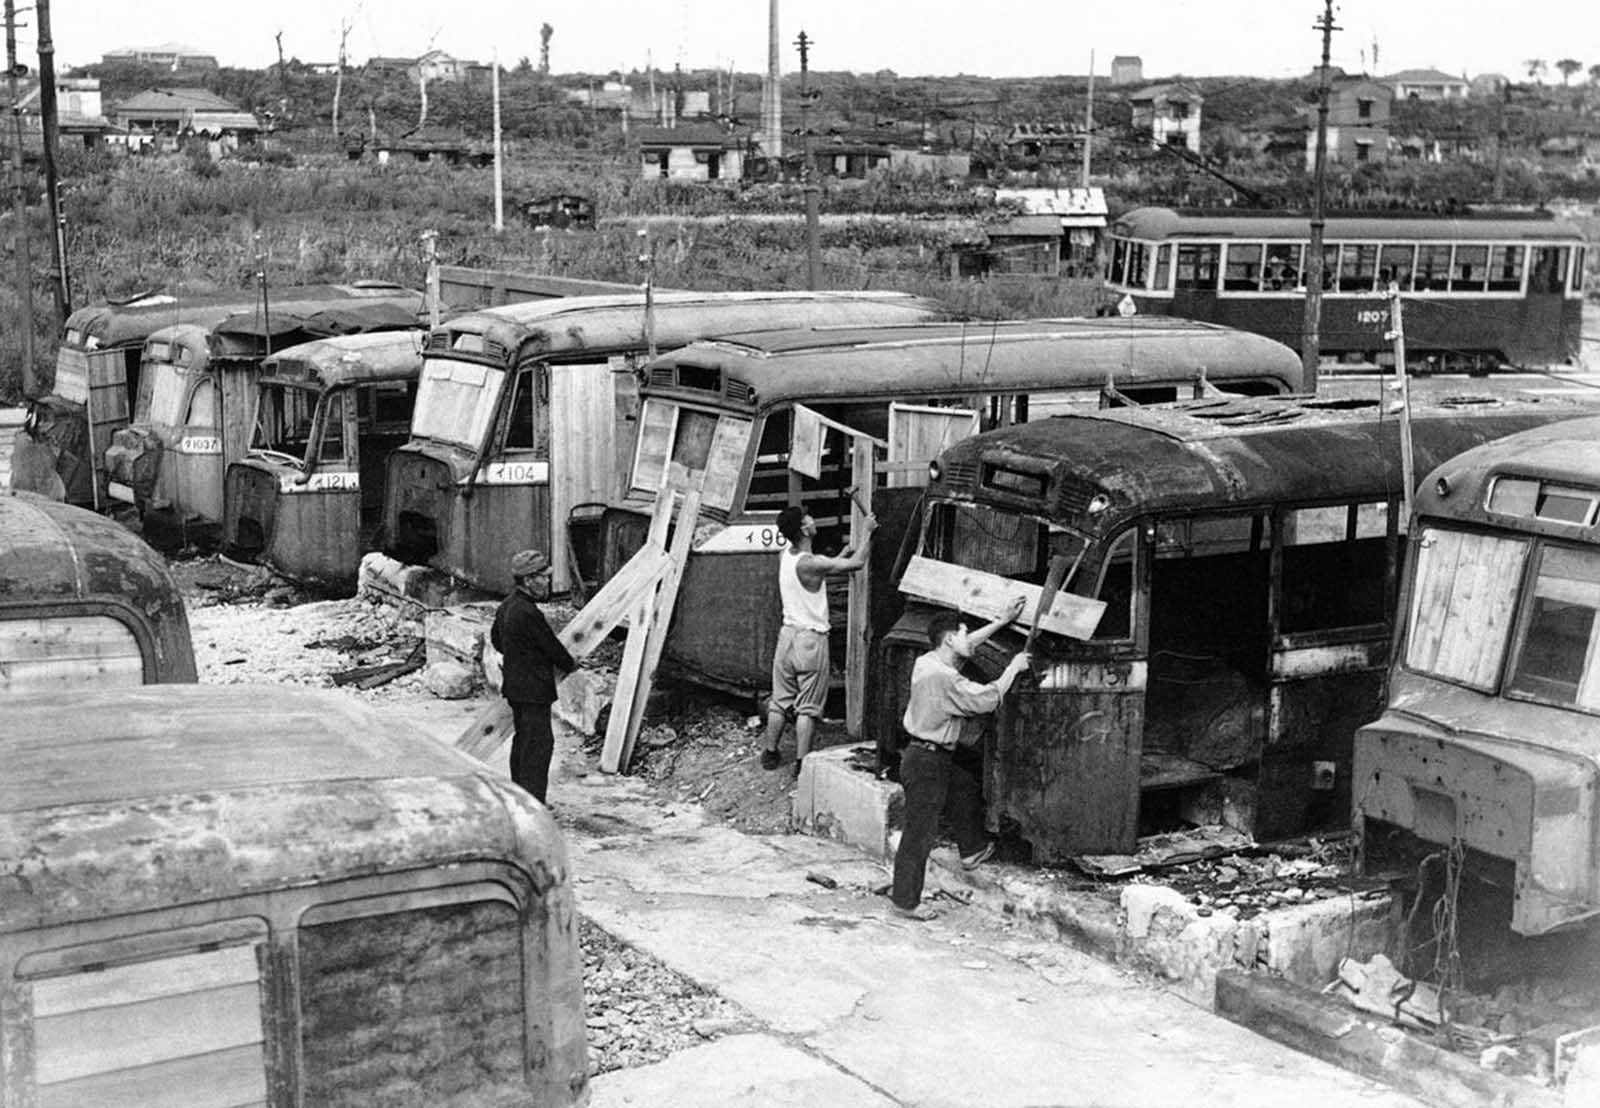 Disabled buses that have littered the streets of Tokyo are used to help relieve the acute housing shortage in the Japanese capital on October 2, 1946. Homeless Japanese who hauled the buses into a vacant lot are converting them into homes for their families.